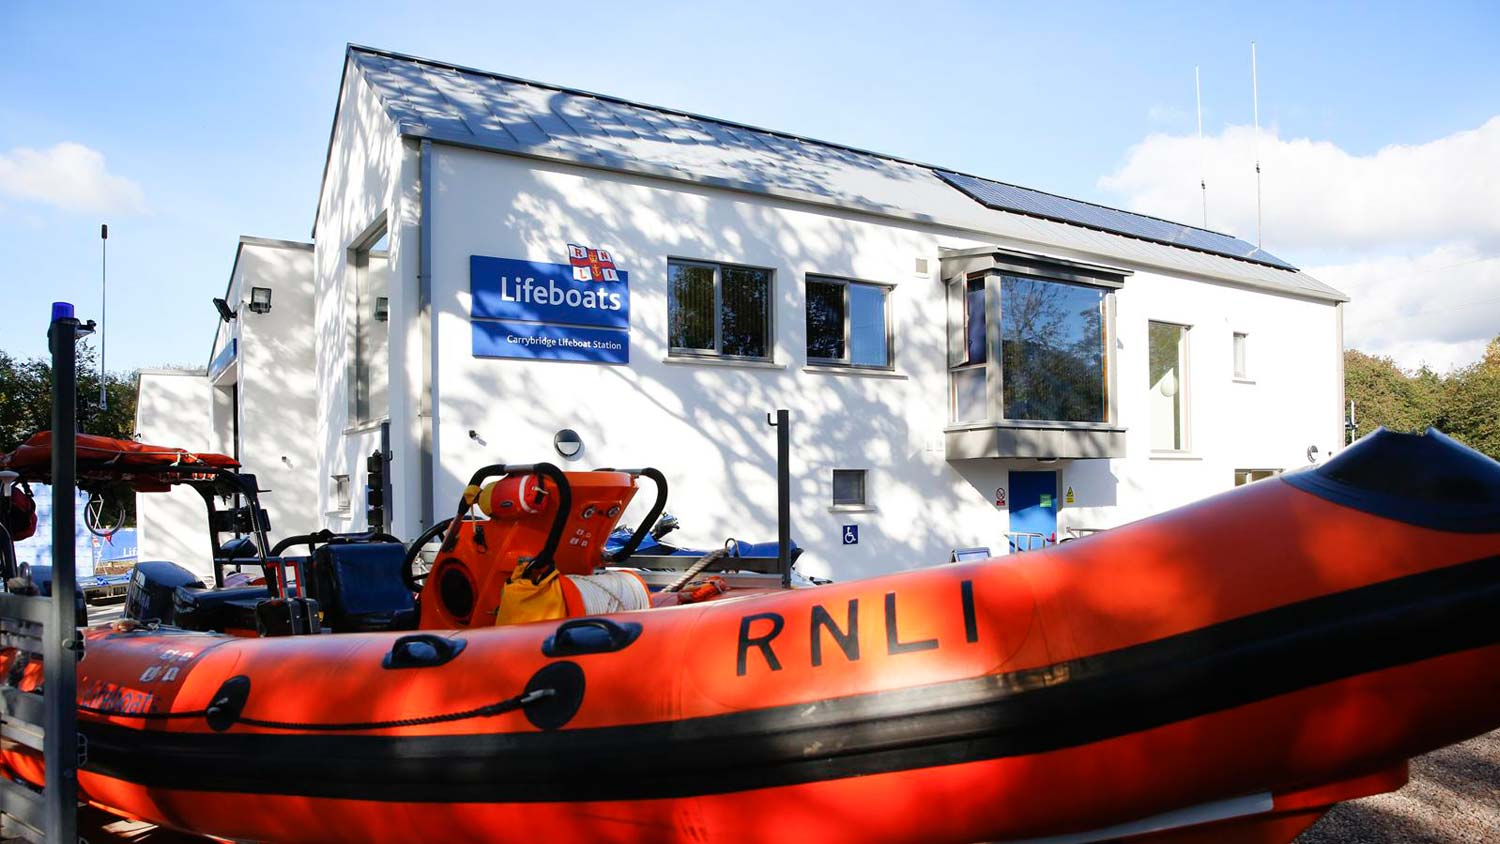 Carrybridge Lifeboat Station